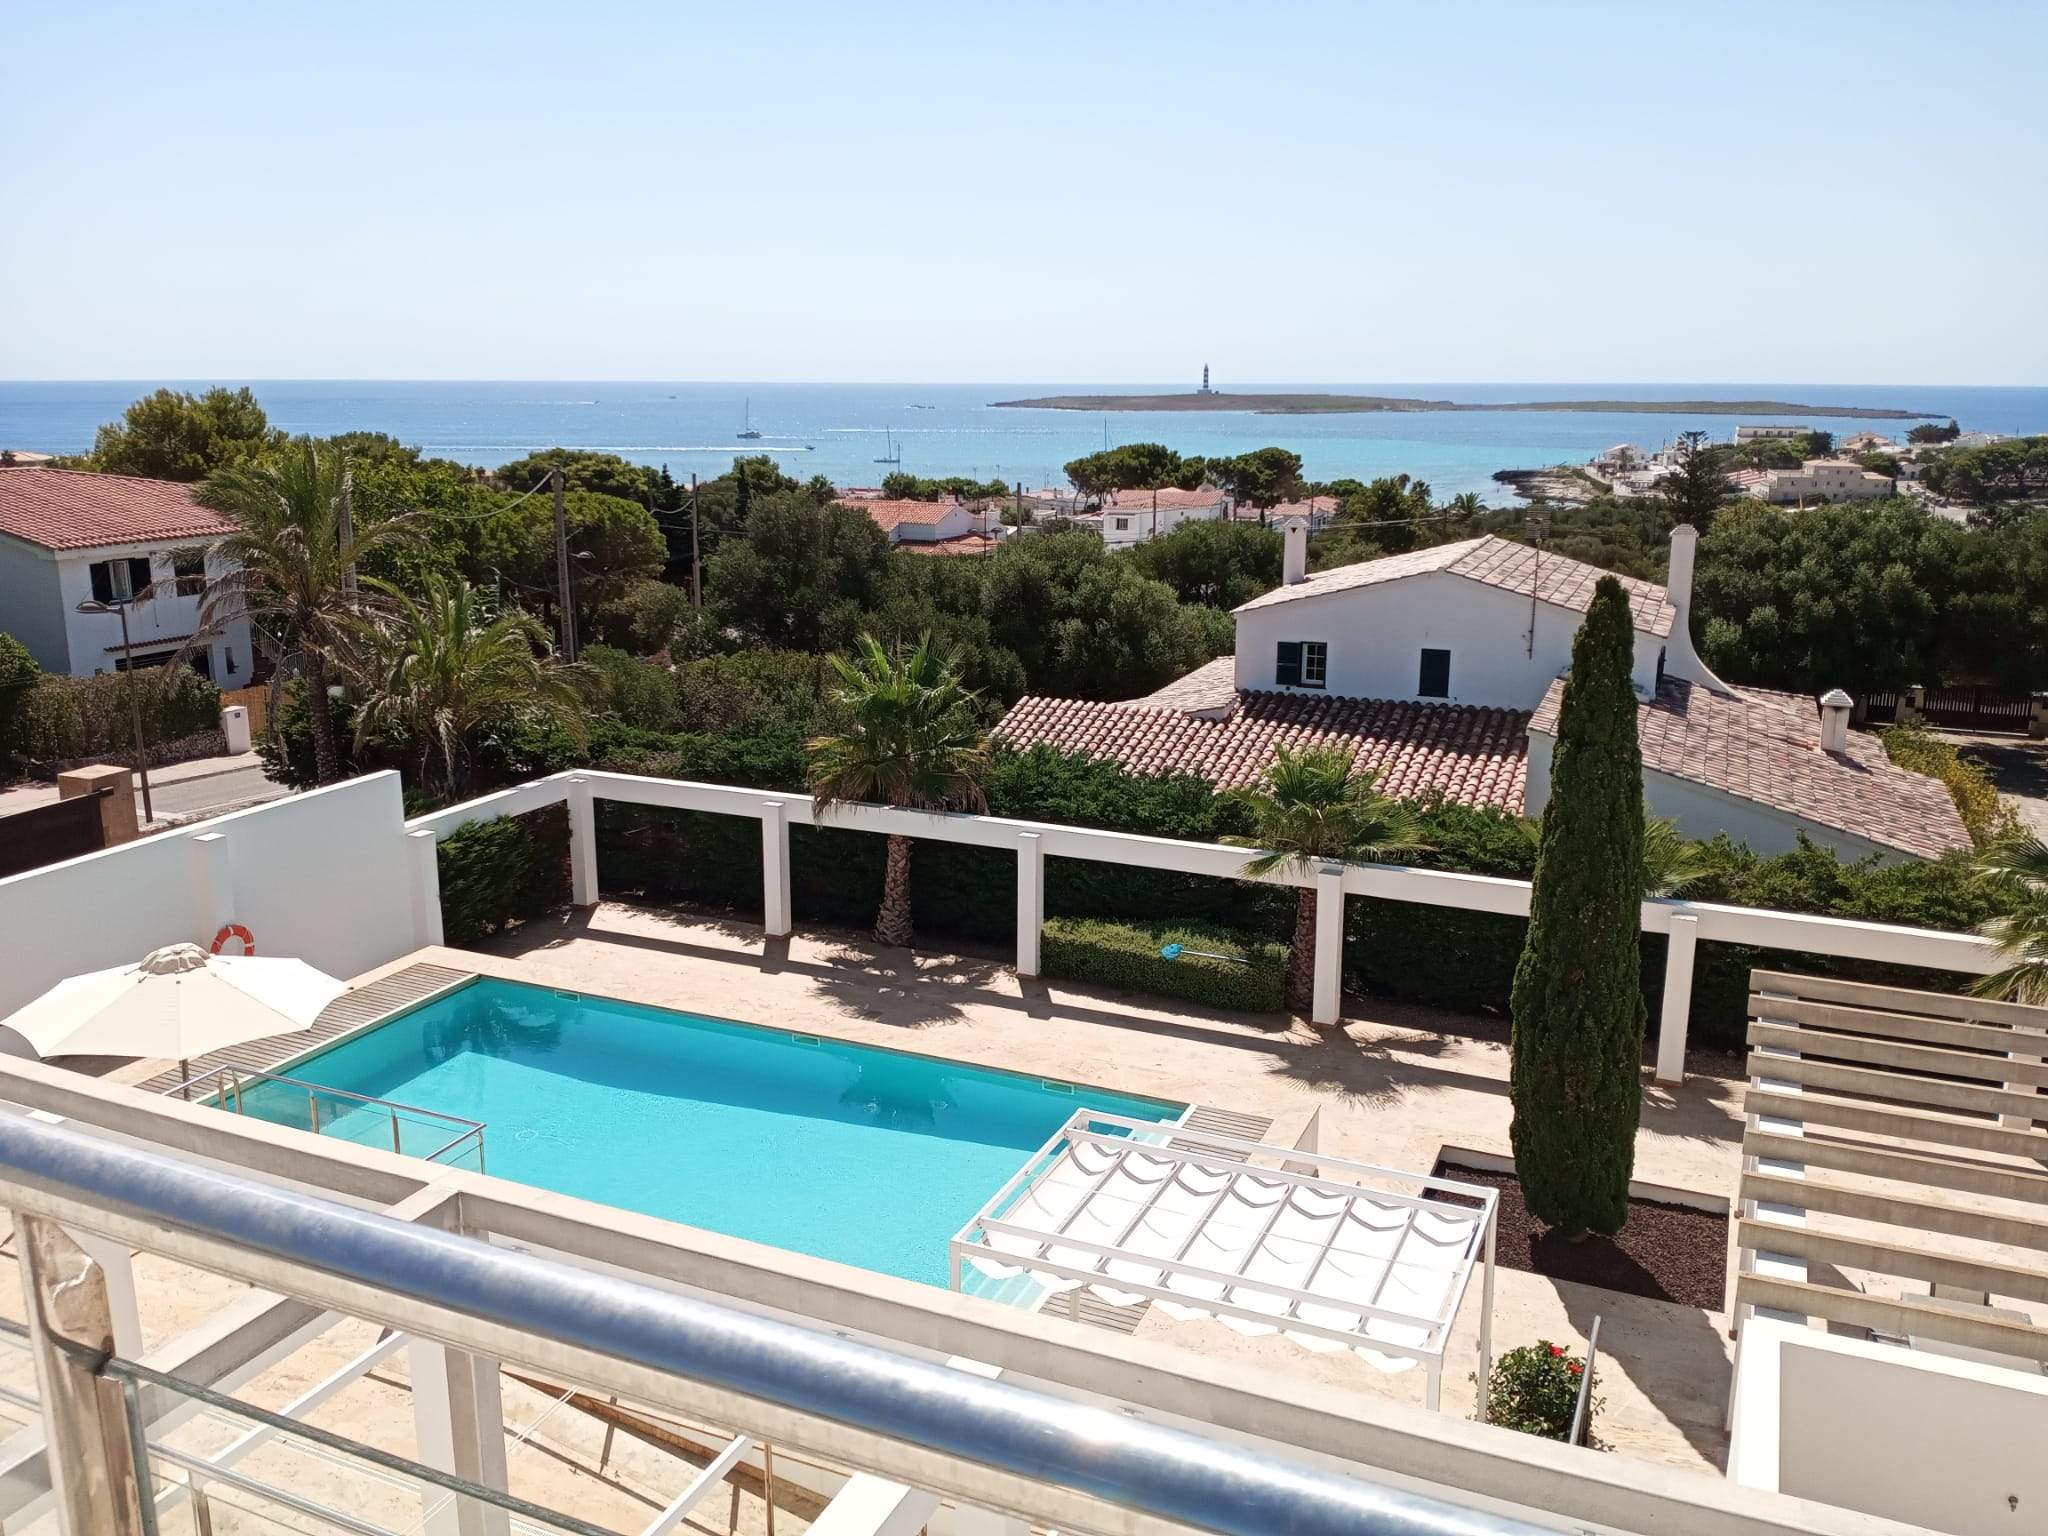 Casa Pitiusa, 4 Bedroom rate, 4 bedroom villa in Mahon, San Luis & South East, Menorca Photo #10